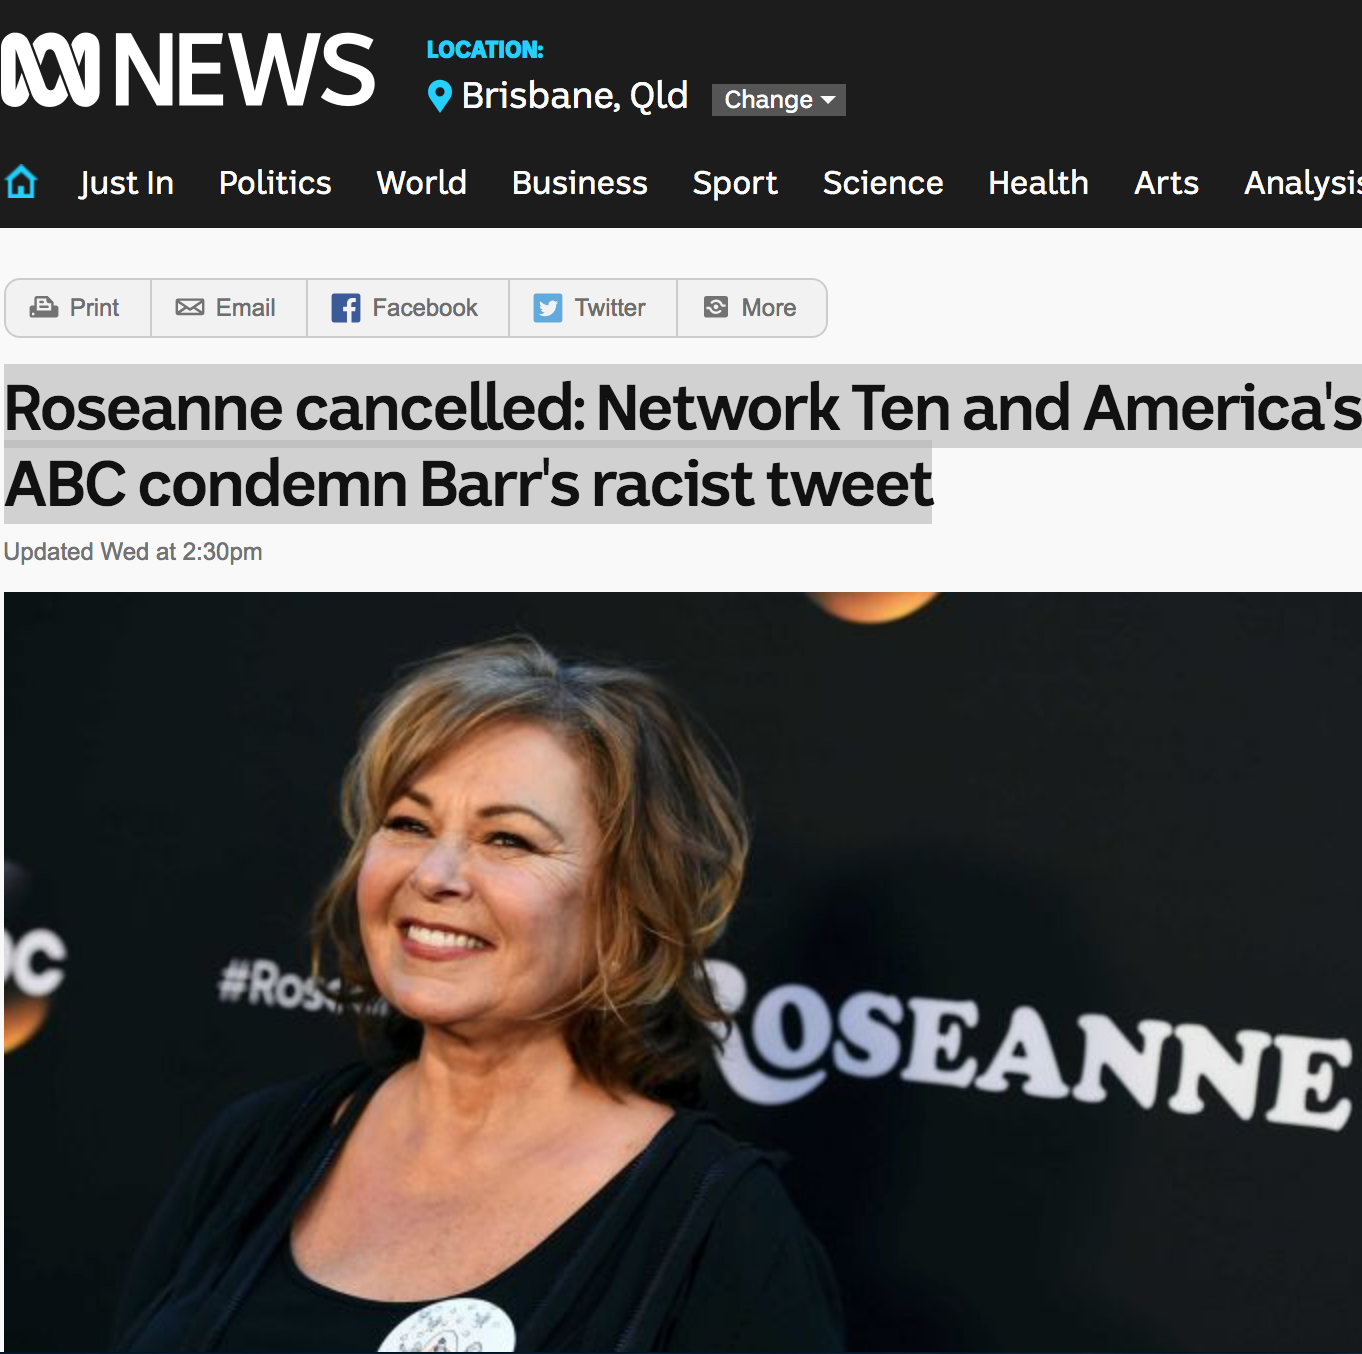 ABC News_Rosanne cancelled